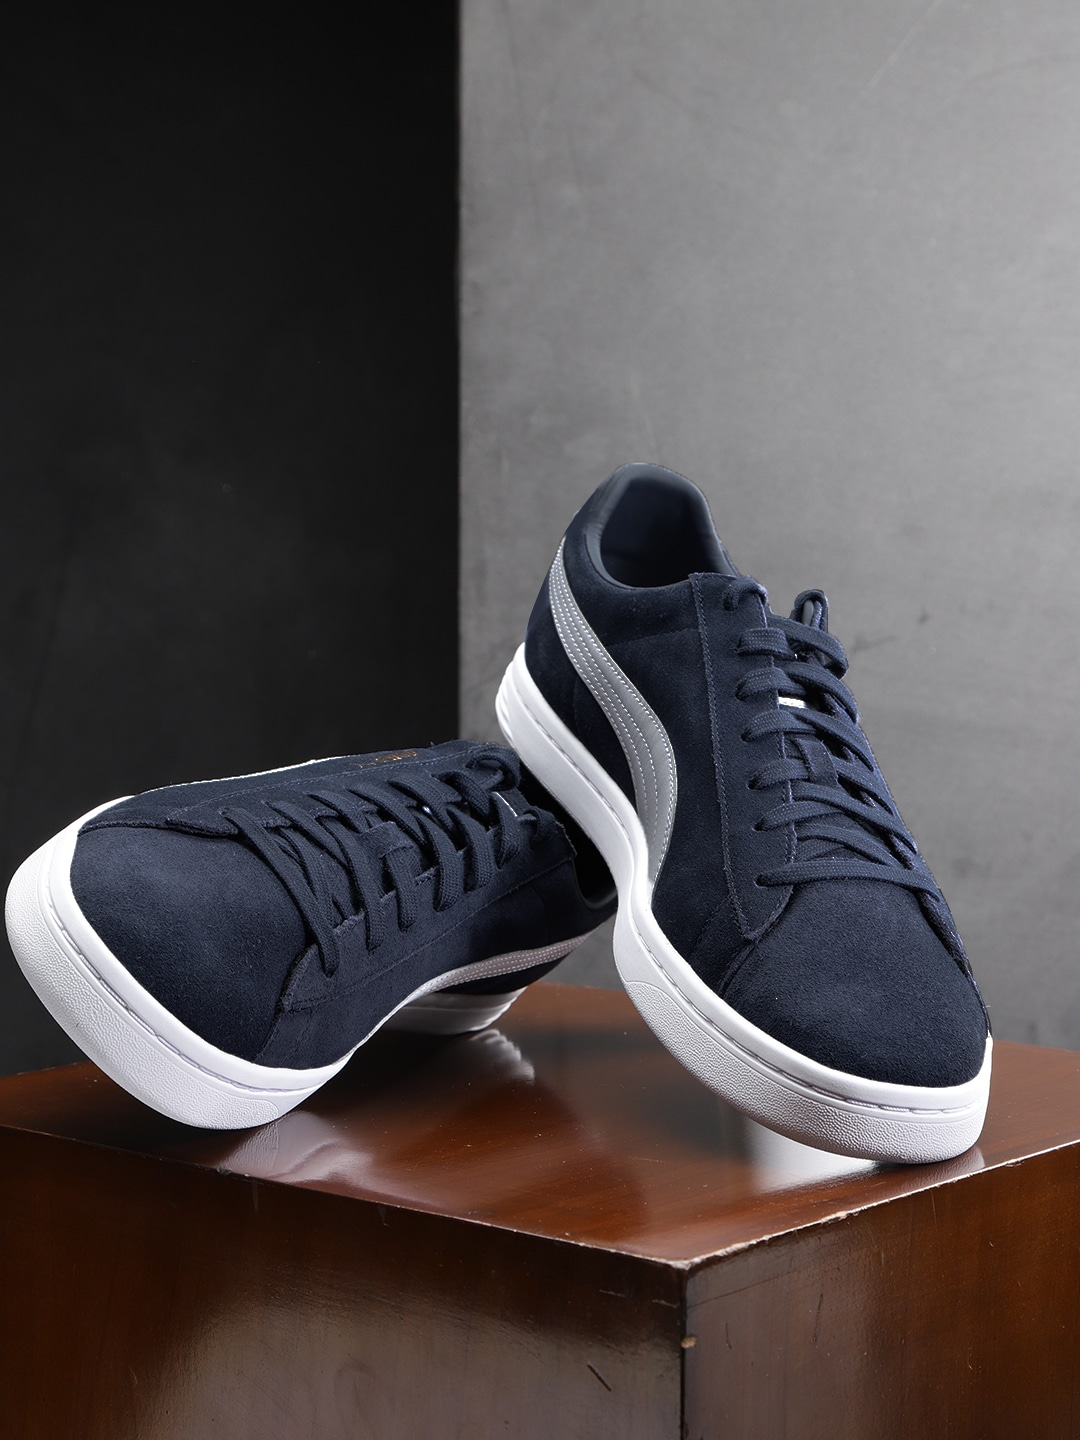 new concept 4fd3c 4d37b Puma Unisex Navy Blue Court Star FS Suede Sneakers